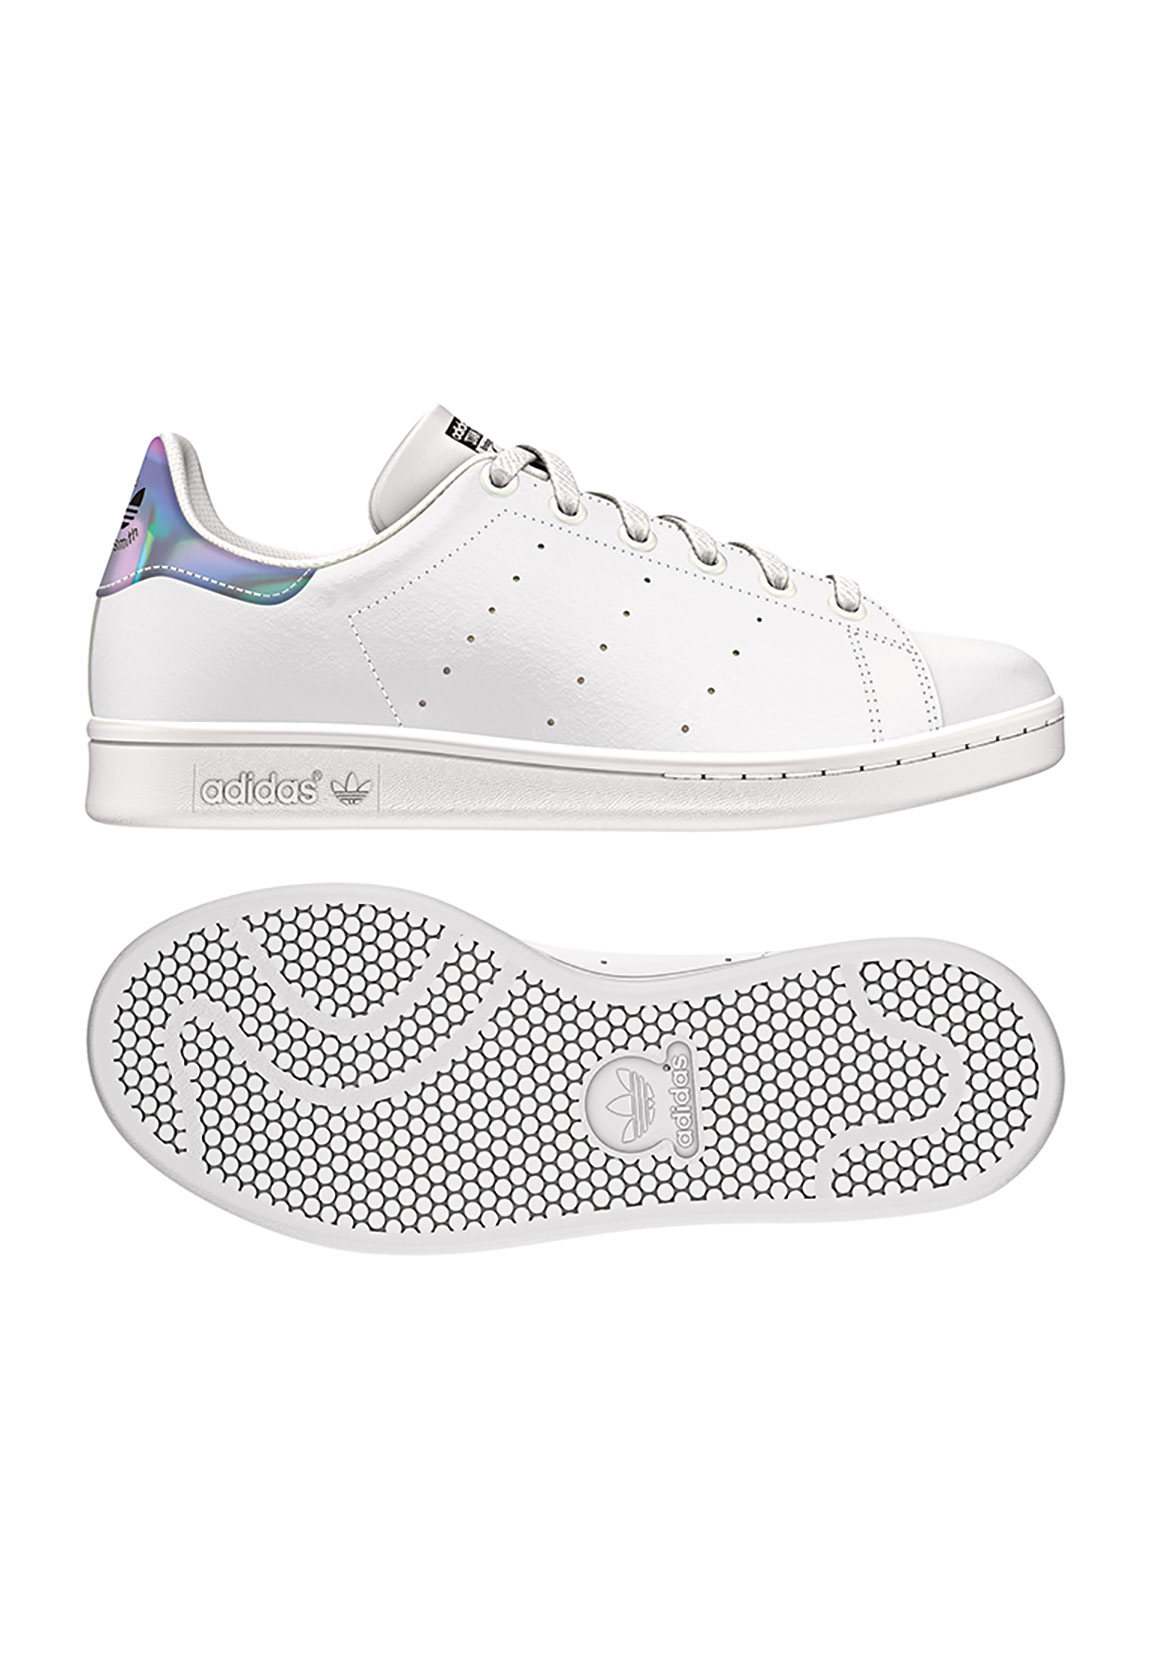 buy popular e72a1 7a88a Details about Adidas Originals Trainers Stan Smith AQ6272 White